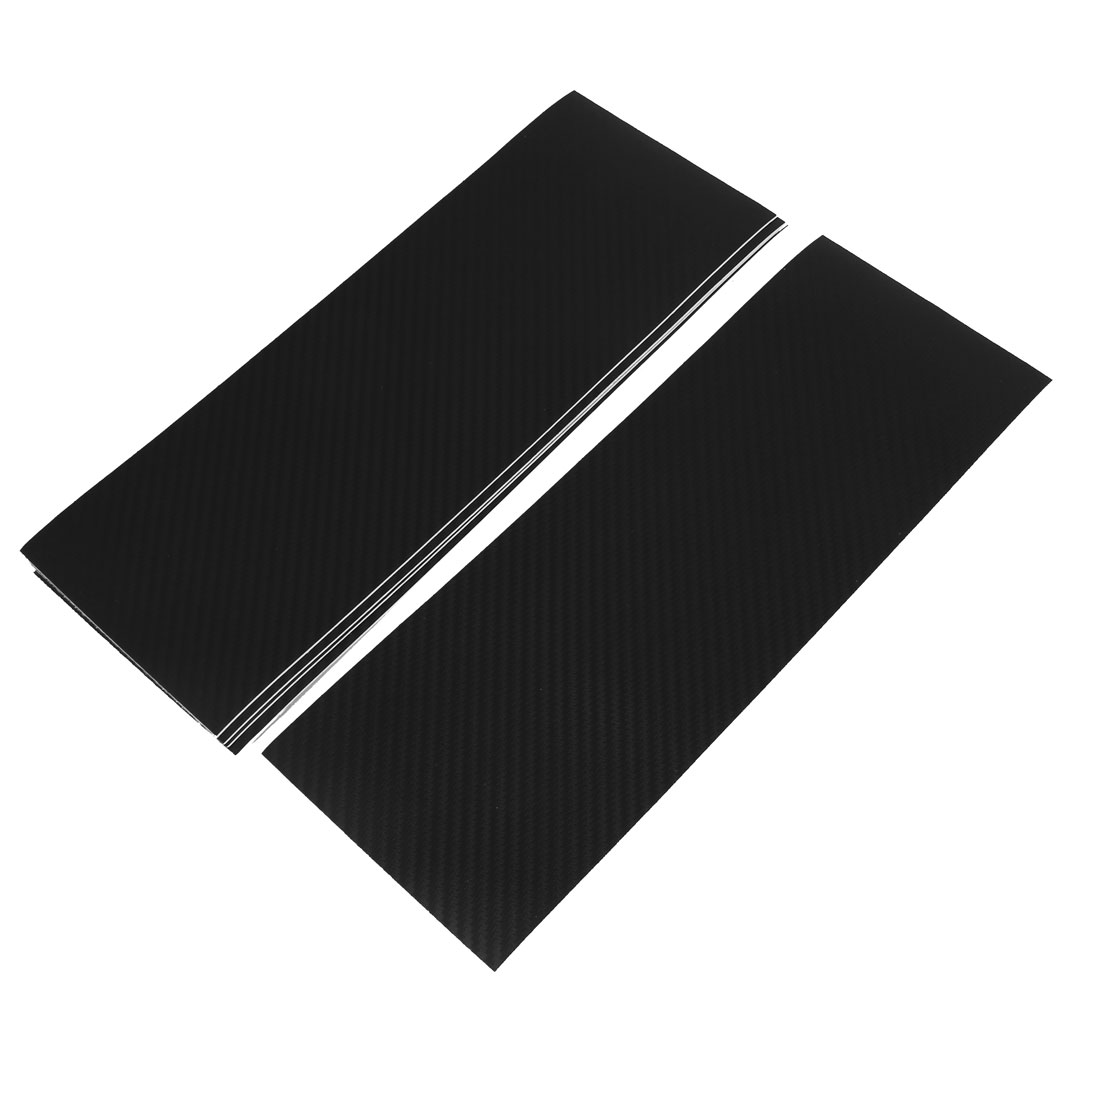 5pcs 300 x 107mm Self Adhesive Carbon Fiber Protective Film Sticker Black for Car